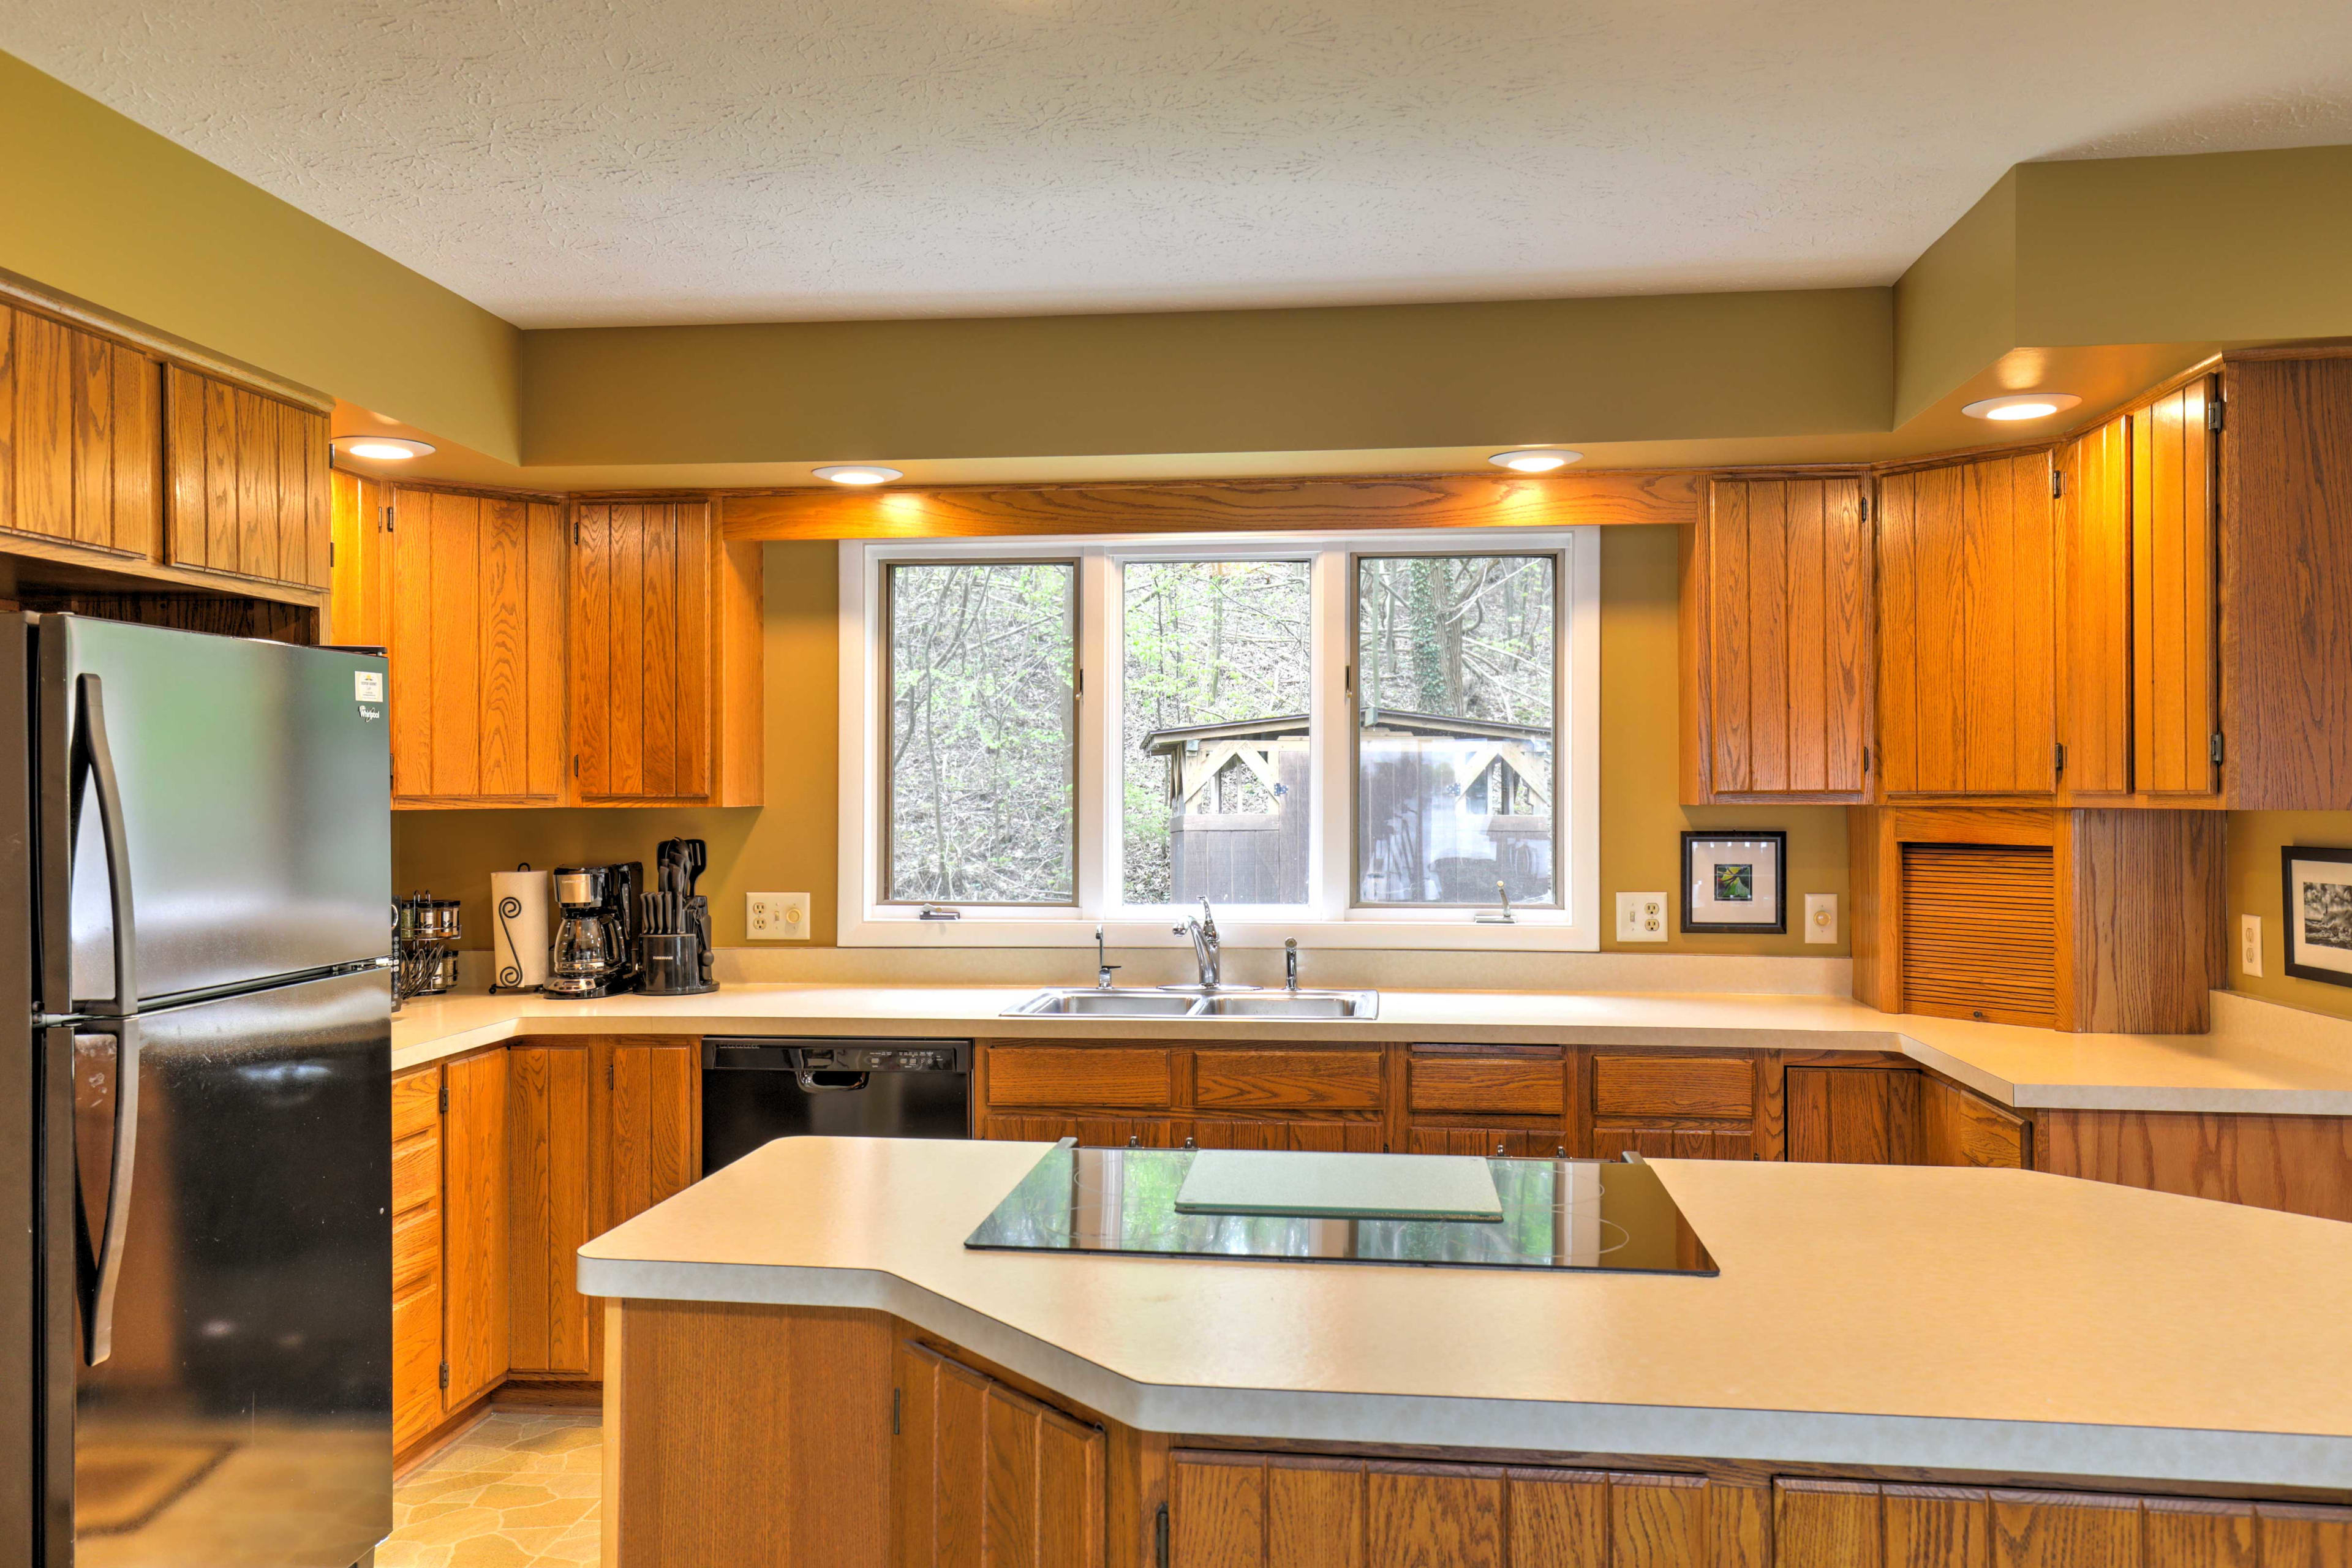 Head to the fully equipped kitchen to prepare all your favorite recipes.